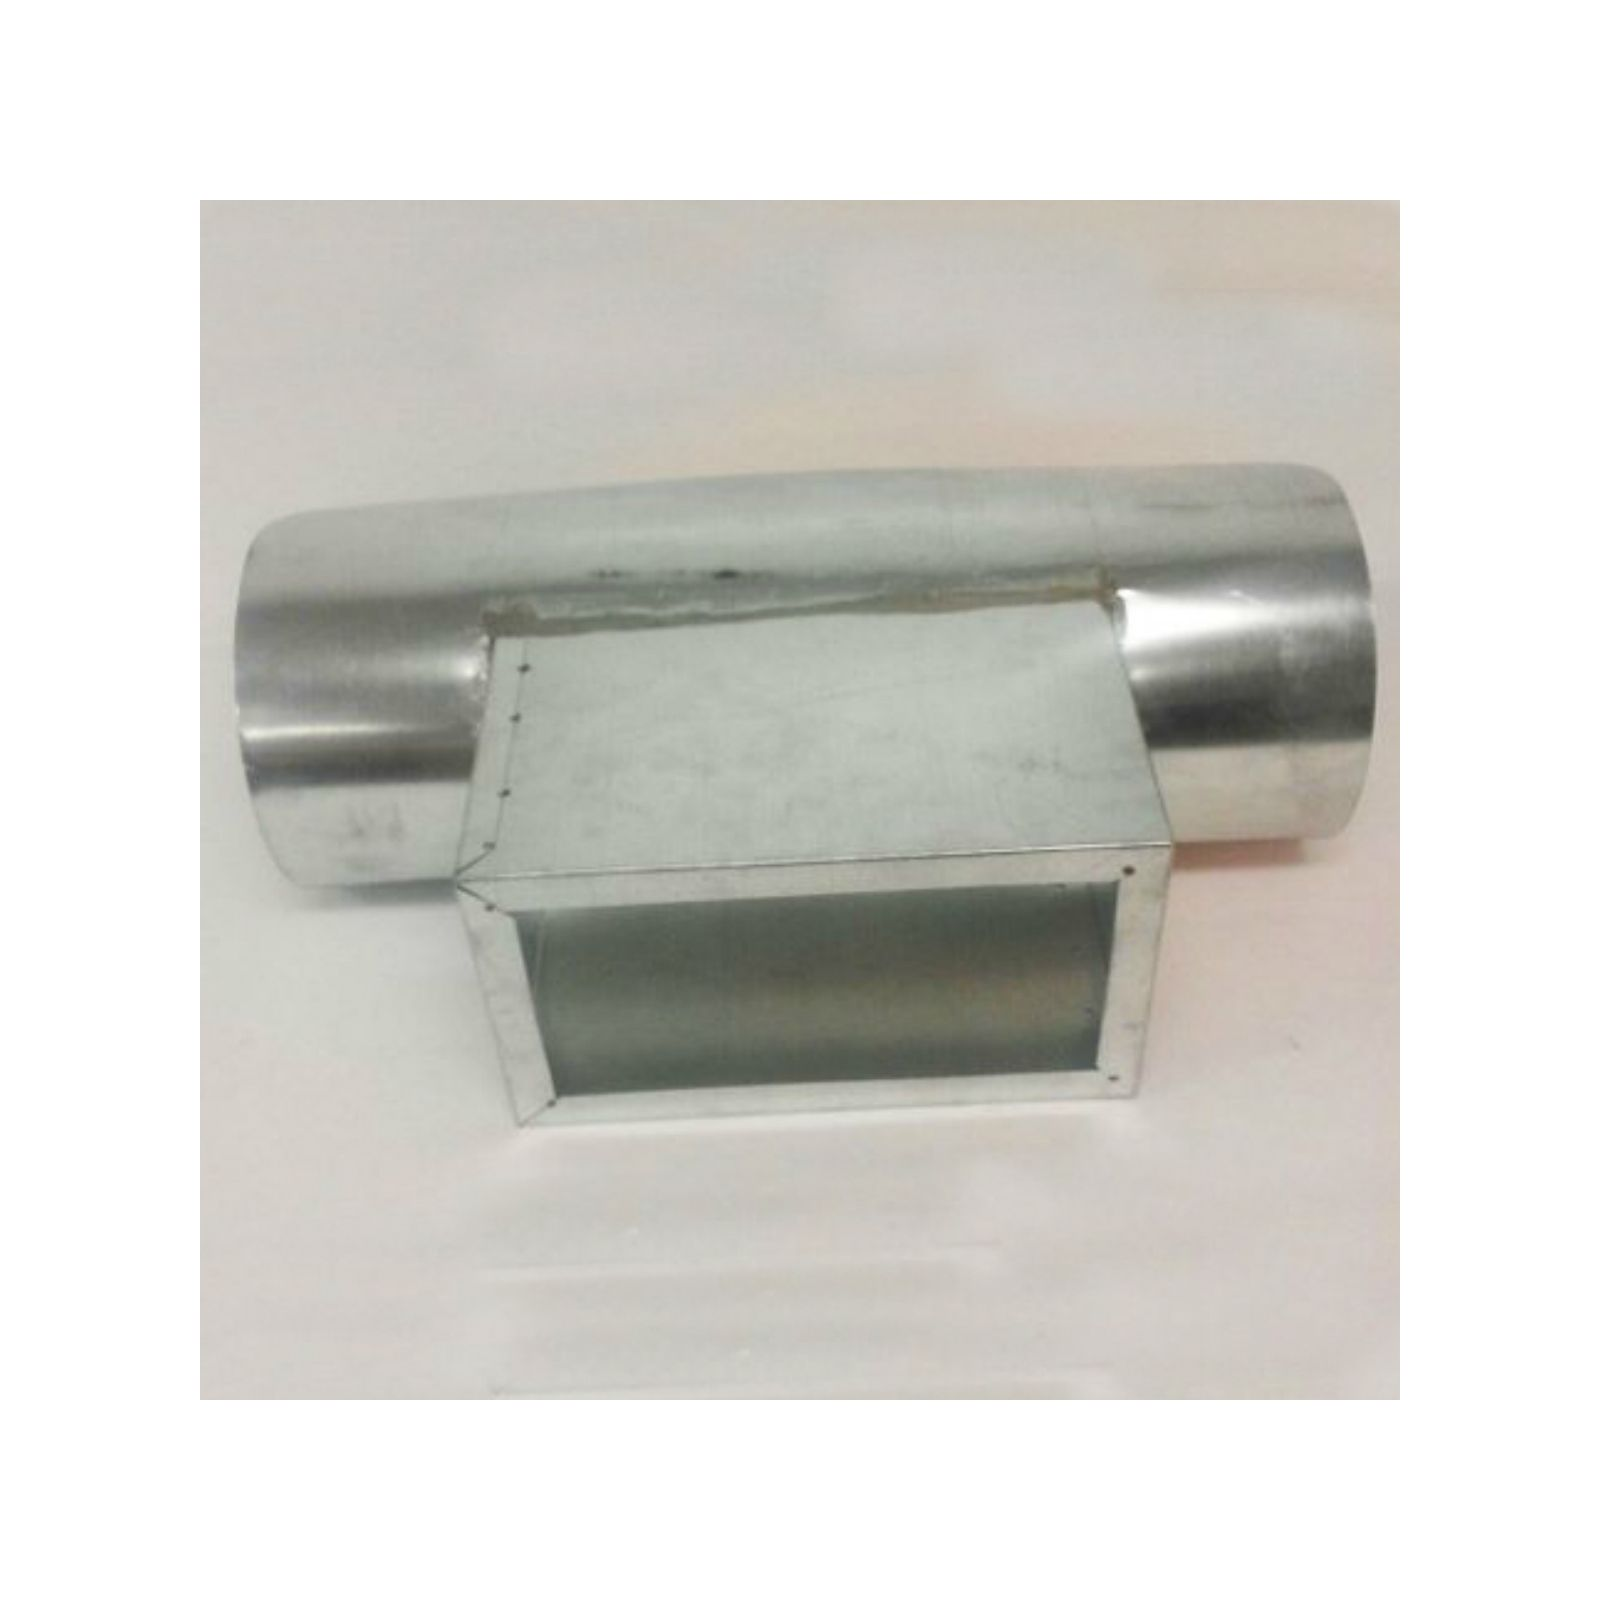 "Modular Metal STRI160814F - Rectangular Saddle Tap, 26 Ga, 6"" High, 1"" Flange, 16"" X 8"" OD 14"" Saddle, 3/4"" Flange/Dovetail"